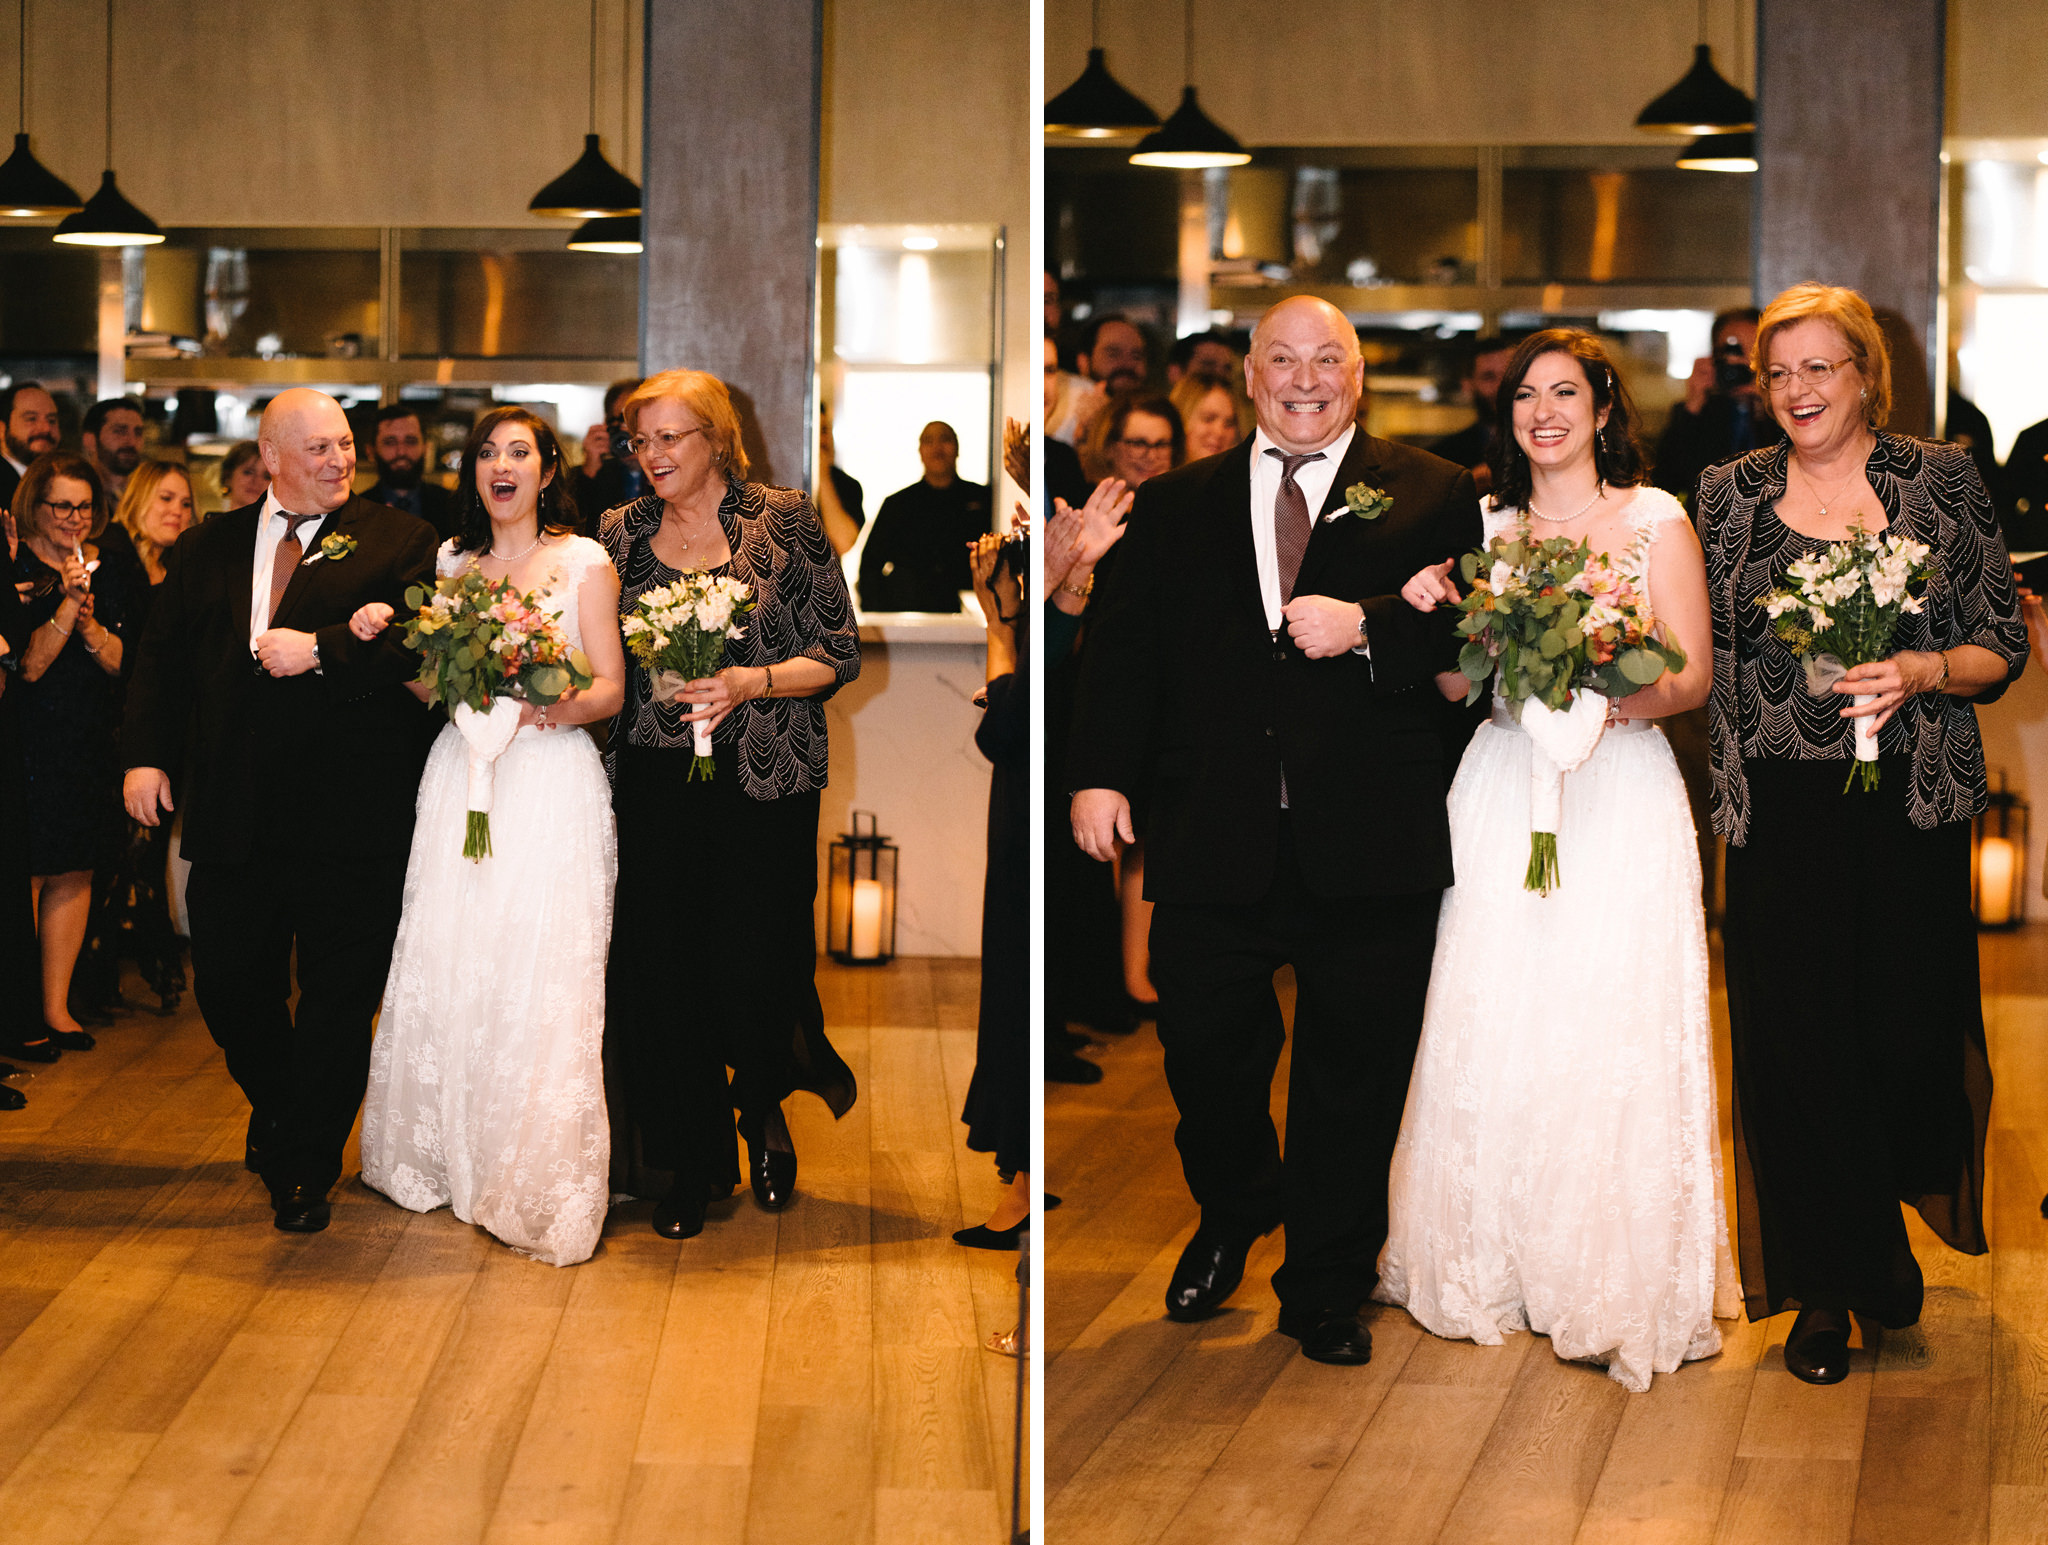 098-rempel-photography-chicago-wedding-inspiration-west-loop-fulton-market-caitlin-max-loft-lucia-venue-lindsey-marino-city-bbq-dana-hotel-and-spa.jpg